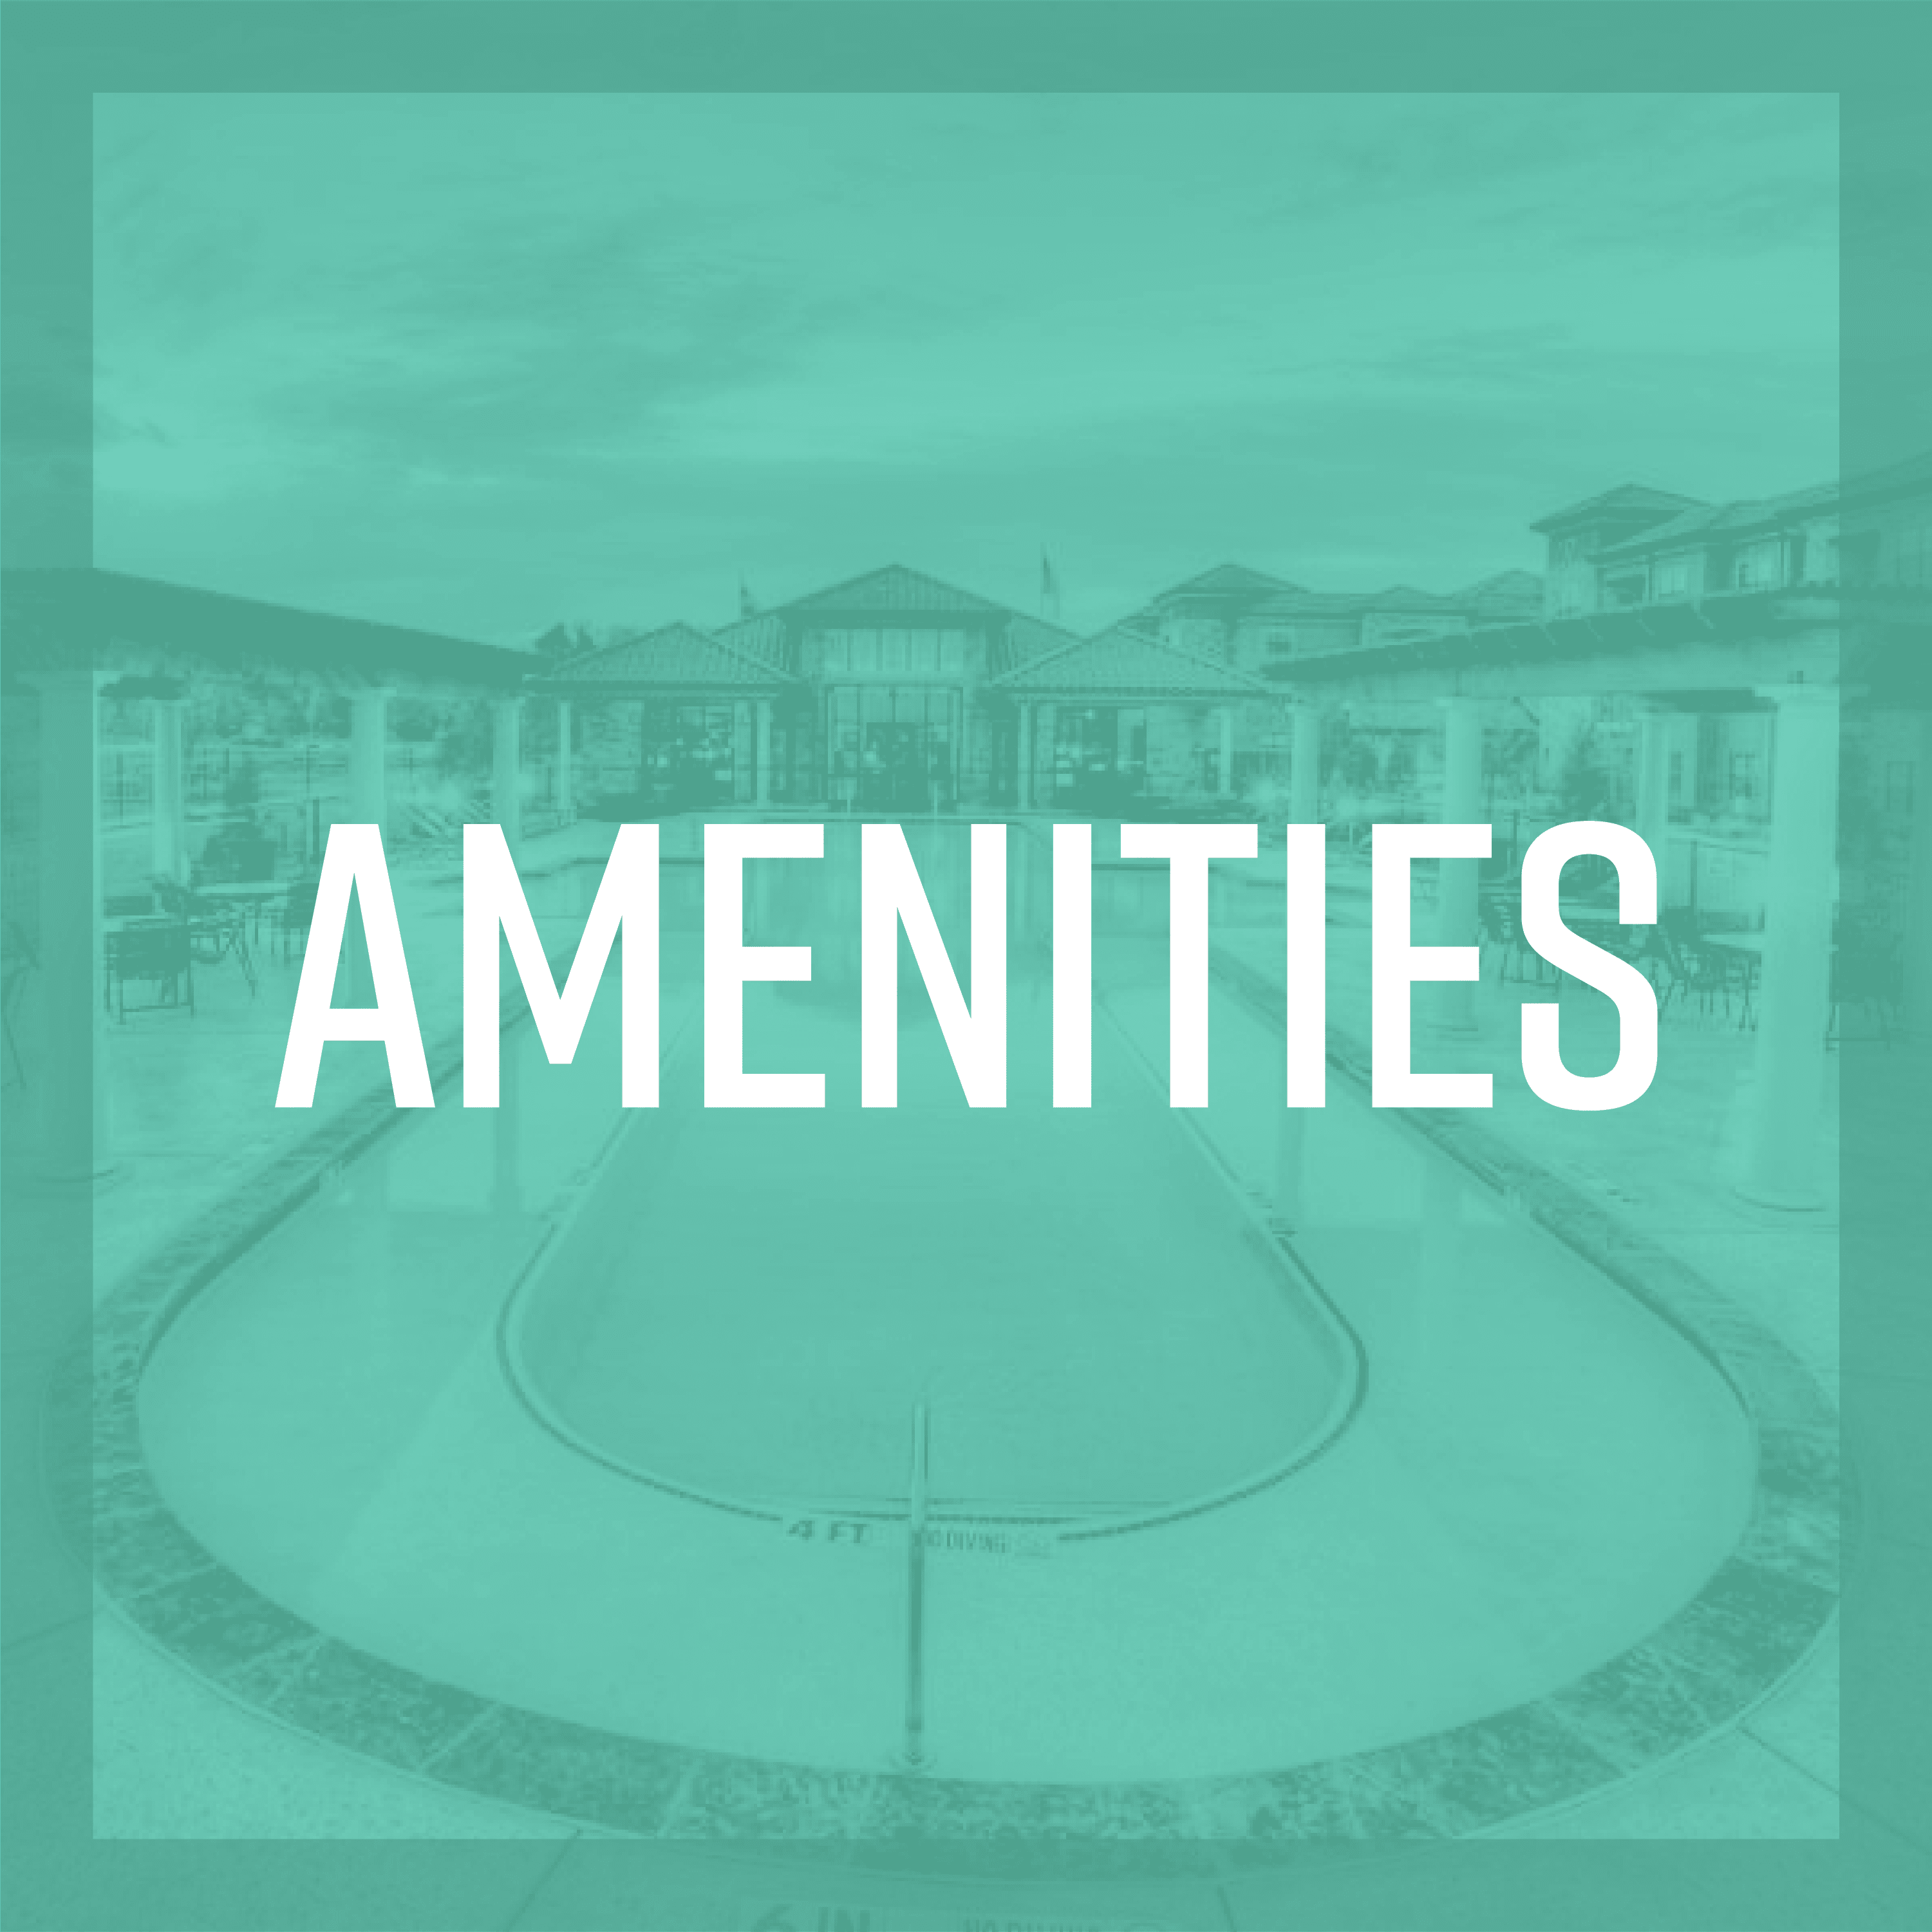 Link to amenities at Amira at Westly in Tampa, Florida